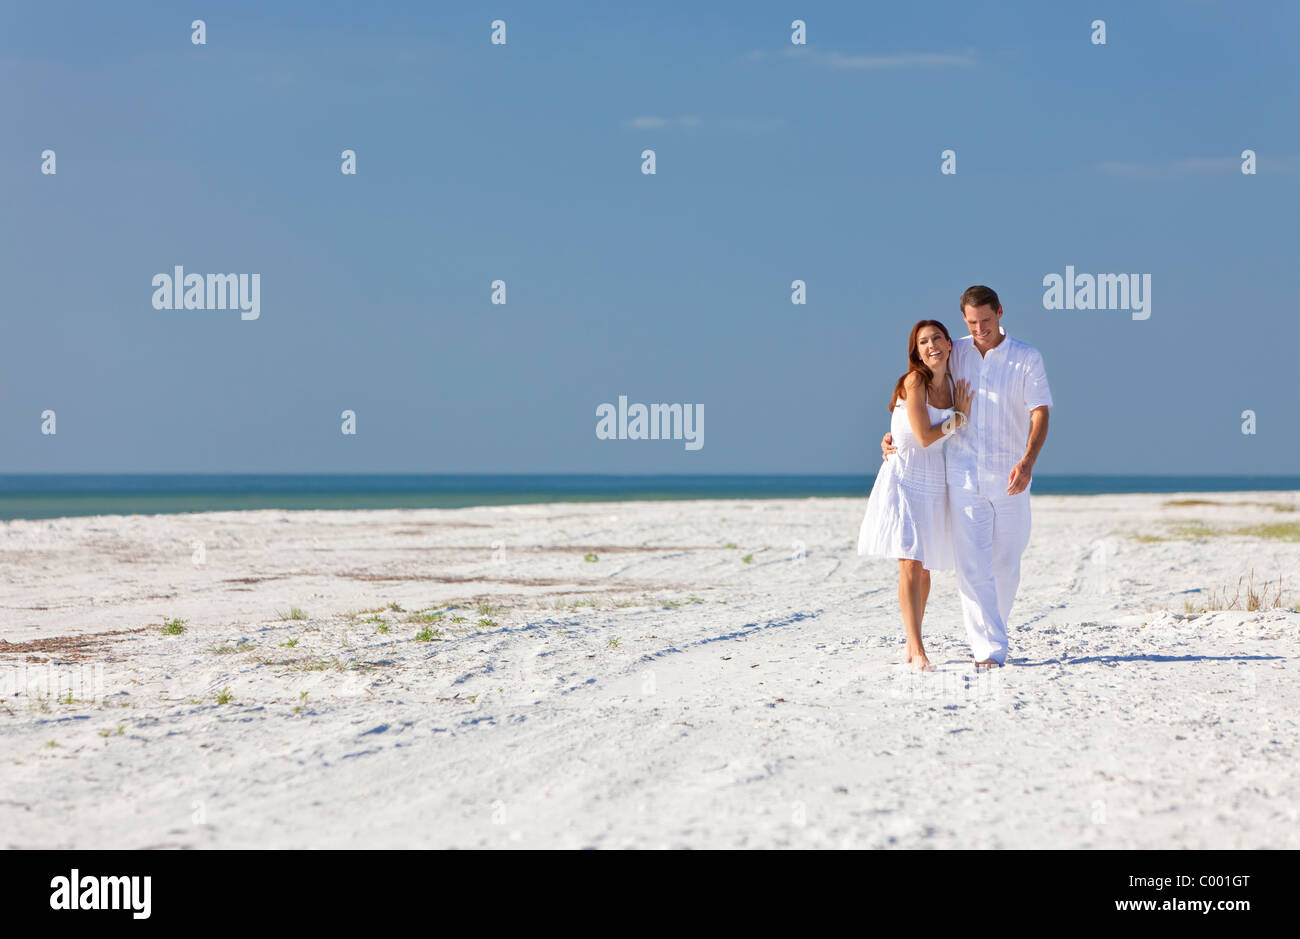 154b27baaa01 Man and woman romantic couple in white clothes walking and laughing  together on a deserted tropical beach with bright blue sky